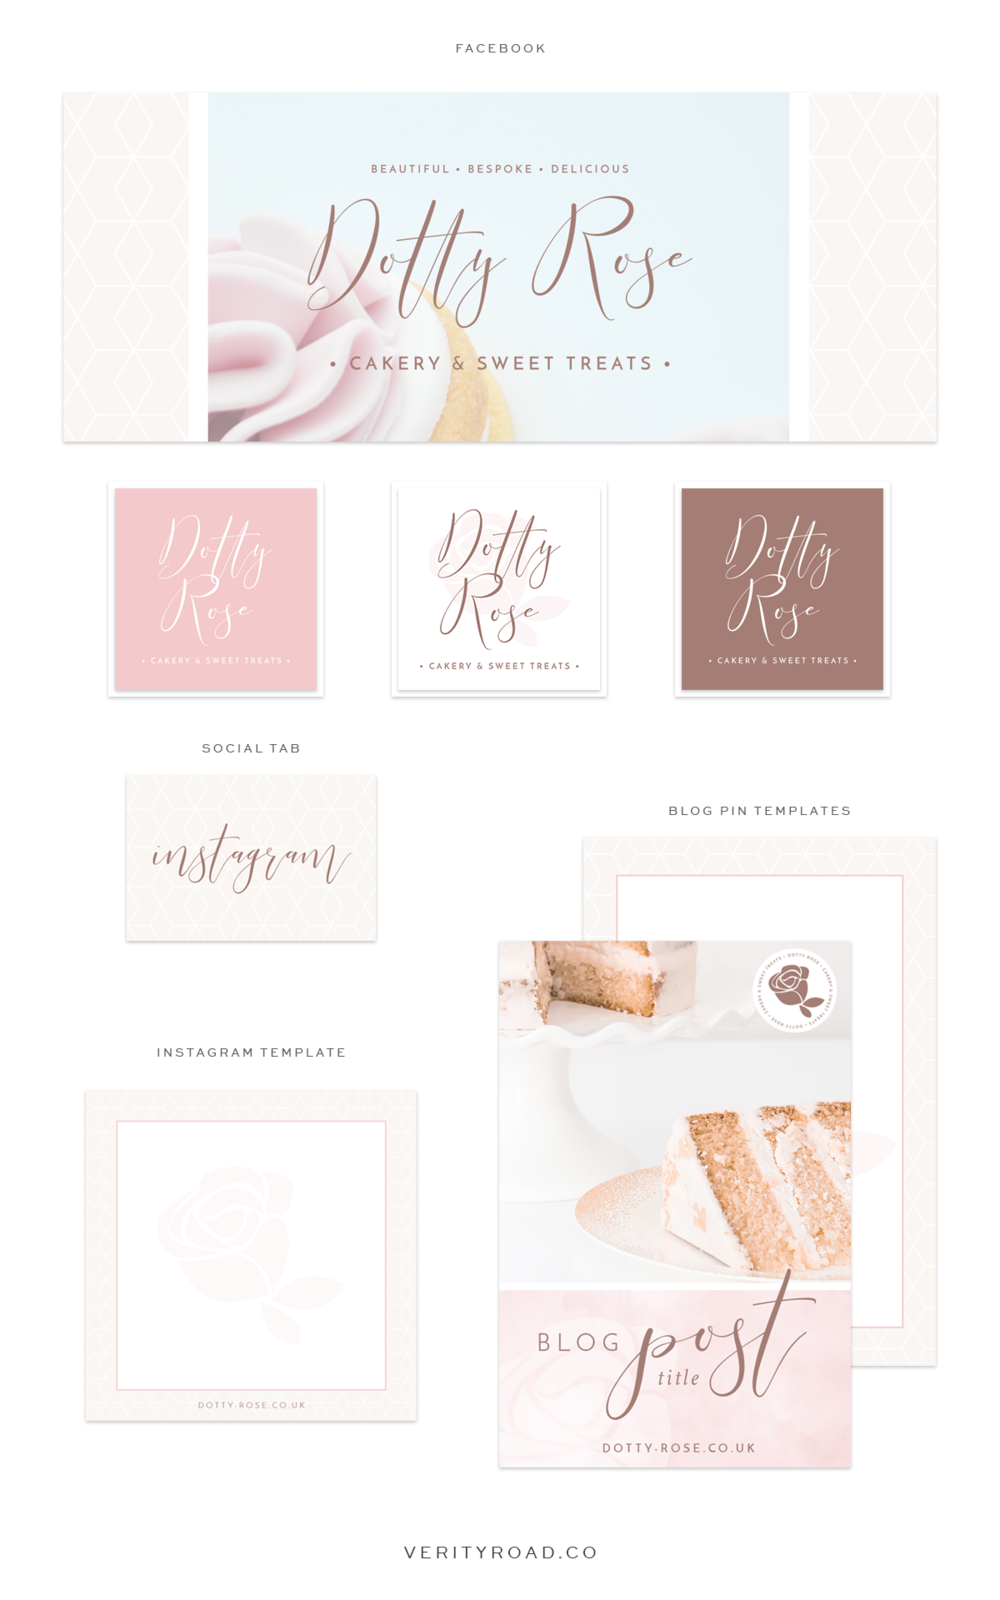 social media branding for dotty rose cakery and sweet treats, wedding professional, wedding business branding, wedding cake designer, luxury branding and web design for female entrepreneurs, feminine branding. Inspiration board of typography, script font, sans serif, serif, pastel color palette, blue, pink, floral inspiration, watercolor, geometric pattern, business owner. instagram, pinterest, blog pin graphic, facebook cover. See more for brand board, mood board and web design.